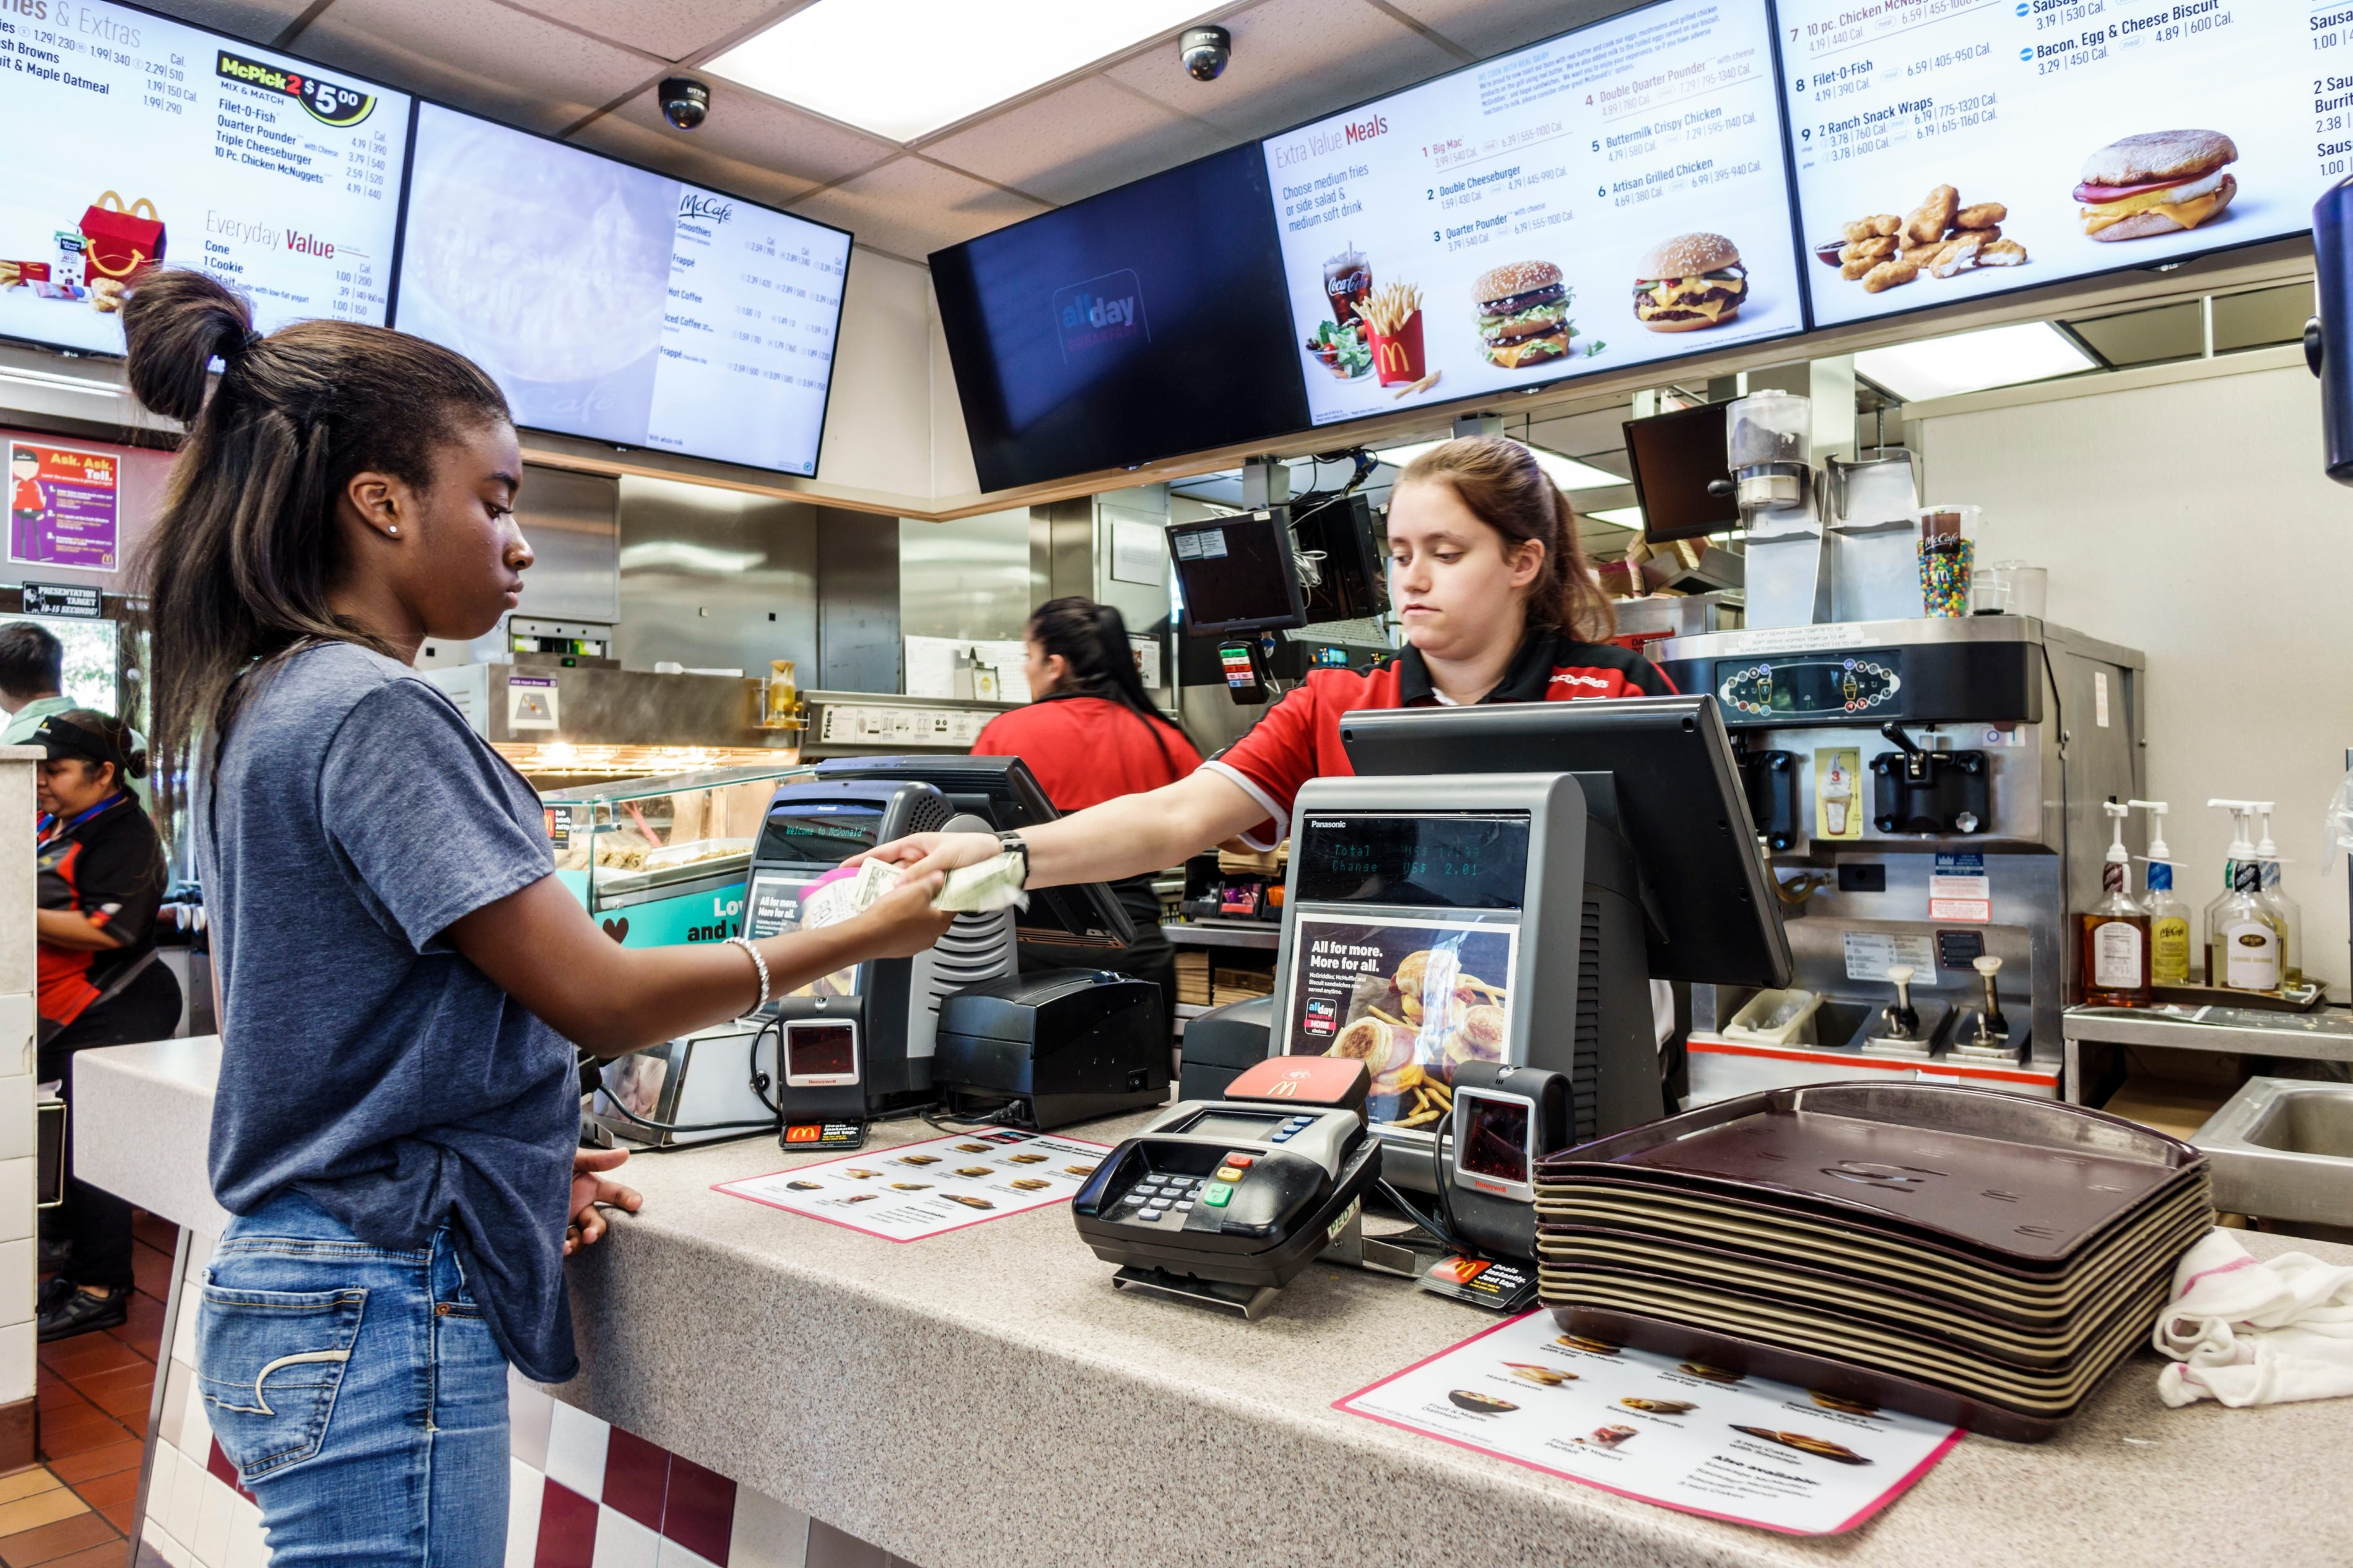 Florida, Vero Beach, McDonald's Fast Food restaurant Cashier giving change to Customer